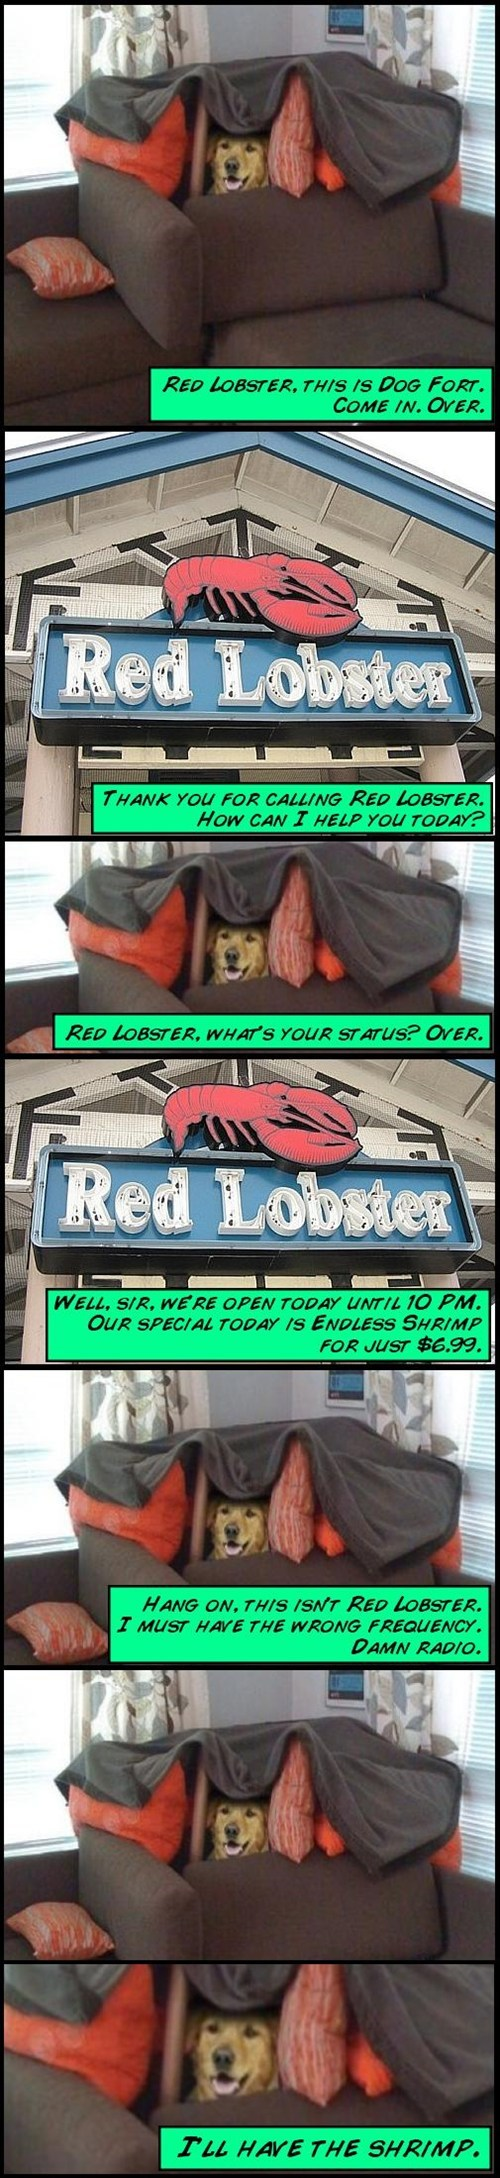 Games - RED LOBSTER, THIS IS DOG FORT. COME IN.OVER. Red Lobstes THANK YOU FOR CALLING RED LOBSTER. How CAN 1T HELP YOU TODAY? RED LOBSTER, WHAT'S YOUR STATUS? OVER. Red Lobster WELL, SIR, WERE OPEN TODAY UNTIL 10 PM. OUR SPECIAL TODAY IS ENDLESS SHRIMP FOR JUST $6.99. HANG ON, THIS ISNT RED LOBSTER. I MUST HAVE THE WRONG FREQUENCY. DAMN RADIO. TLL HAVE THE SHRIMP.